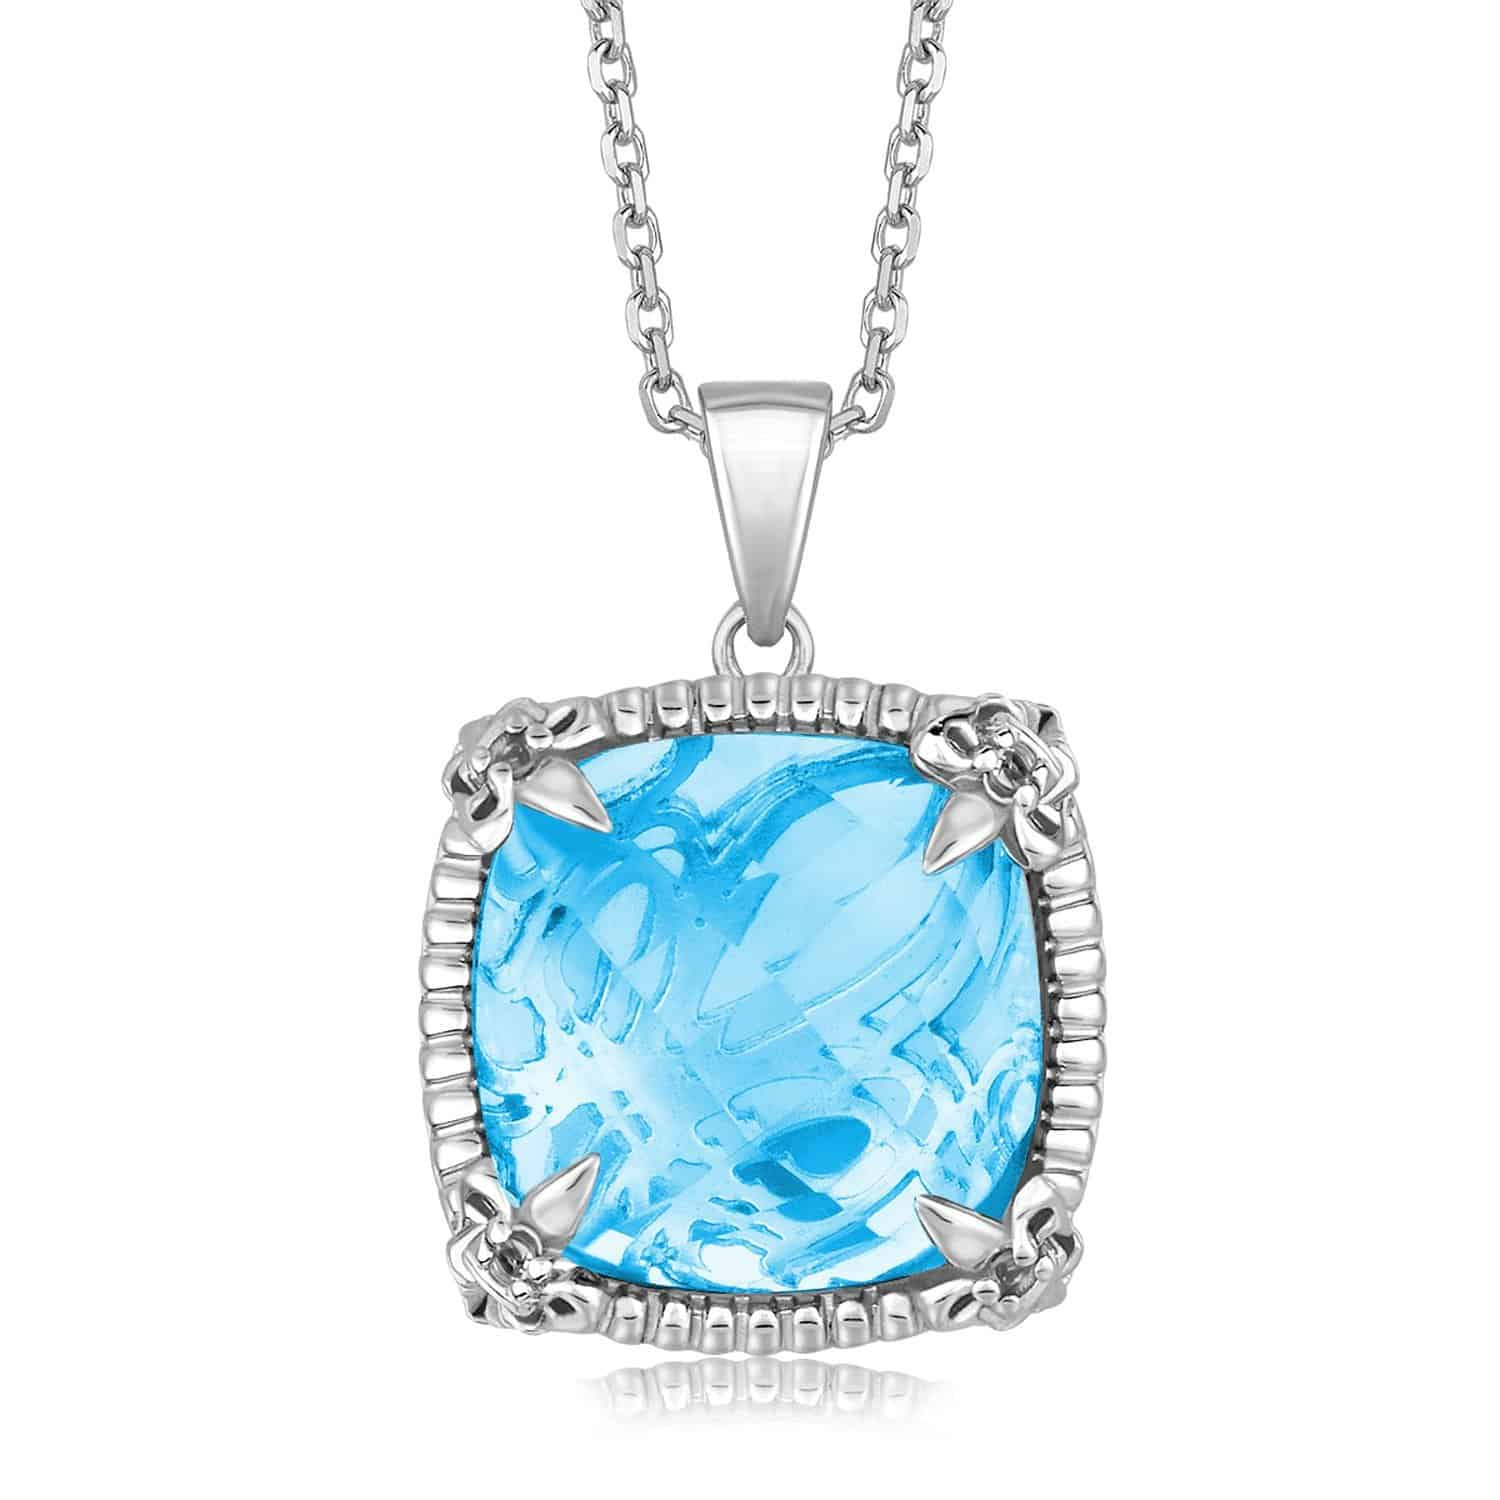 Sterling Silver Pendant with White Sapphire Accented Sky Blue Topaz